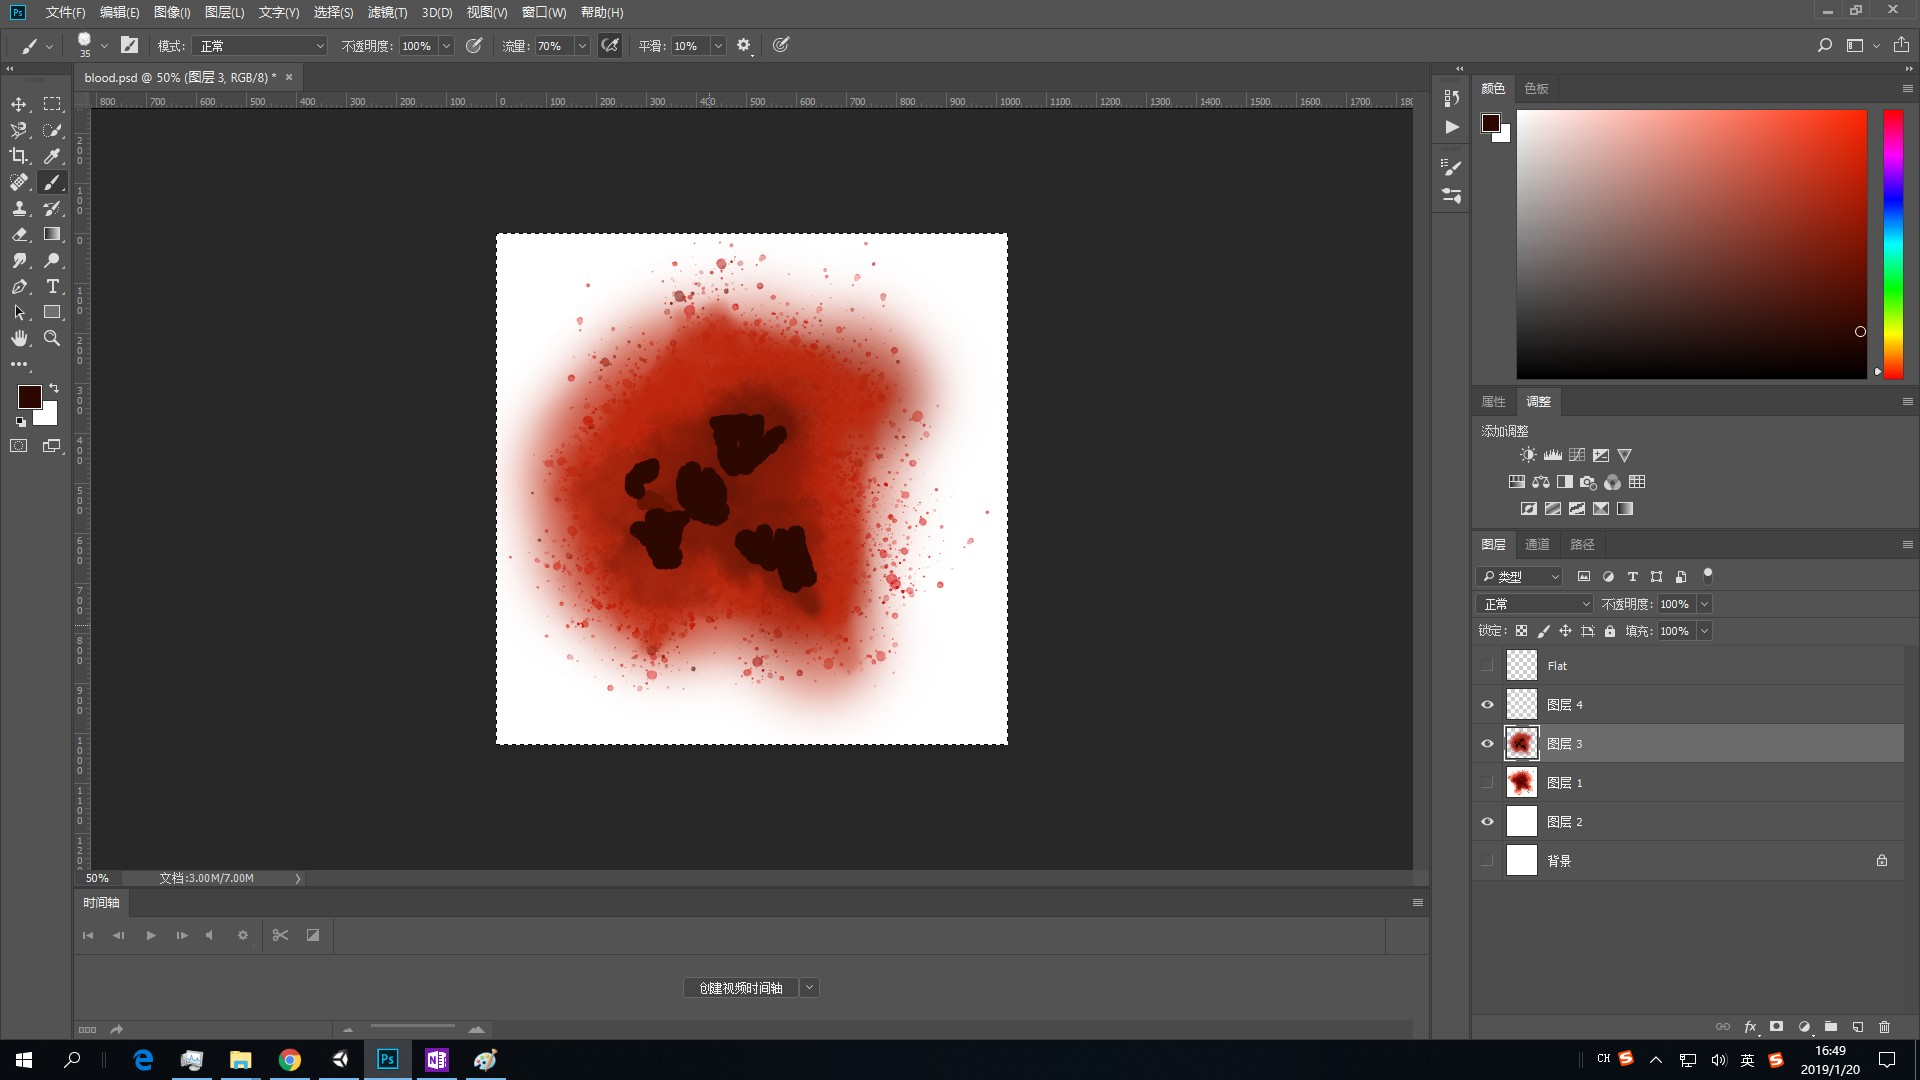 blood_2.png